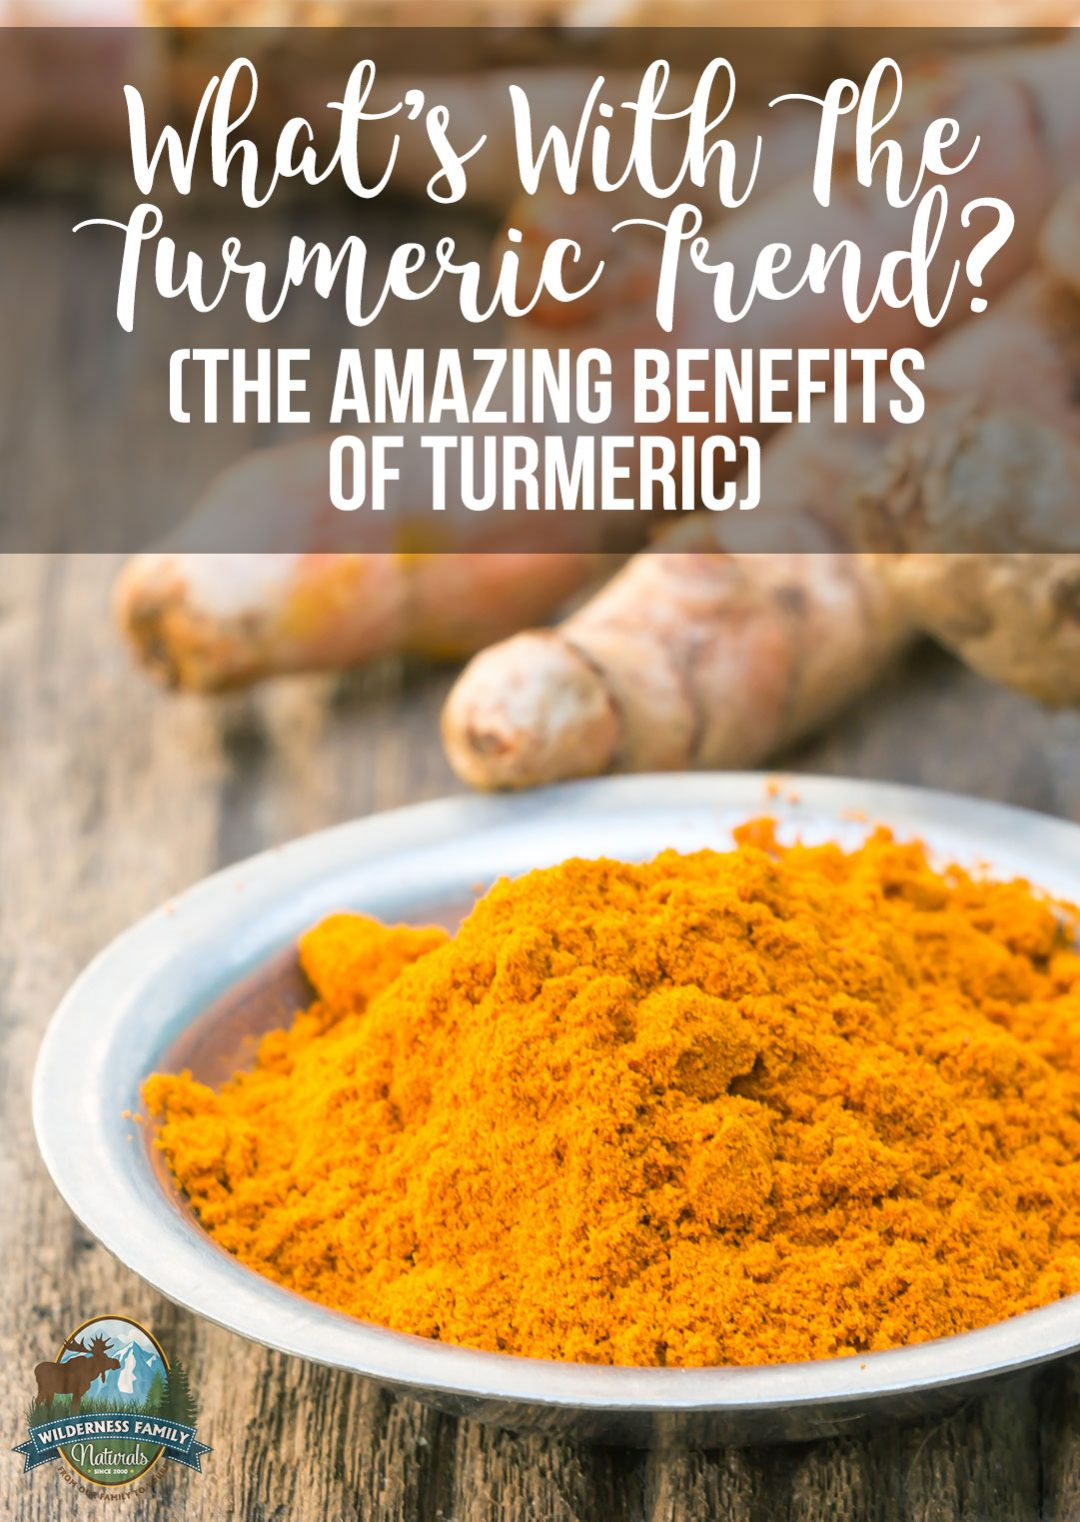 What's With The Turmeric Trend? | Recipes and supplements with turmeric have been popping up on the Internet for a couple of years now... except there's nothing really new about turmeric! The benefits of turmeric have been known by Traditional cultures for thousands of years, but now we've got research to prove what an amazing food turmeric is! | WildernessFamilyNaturals.com